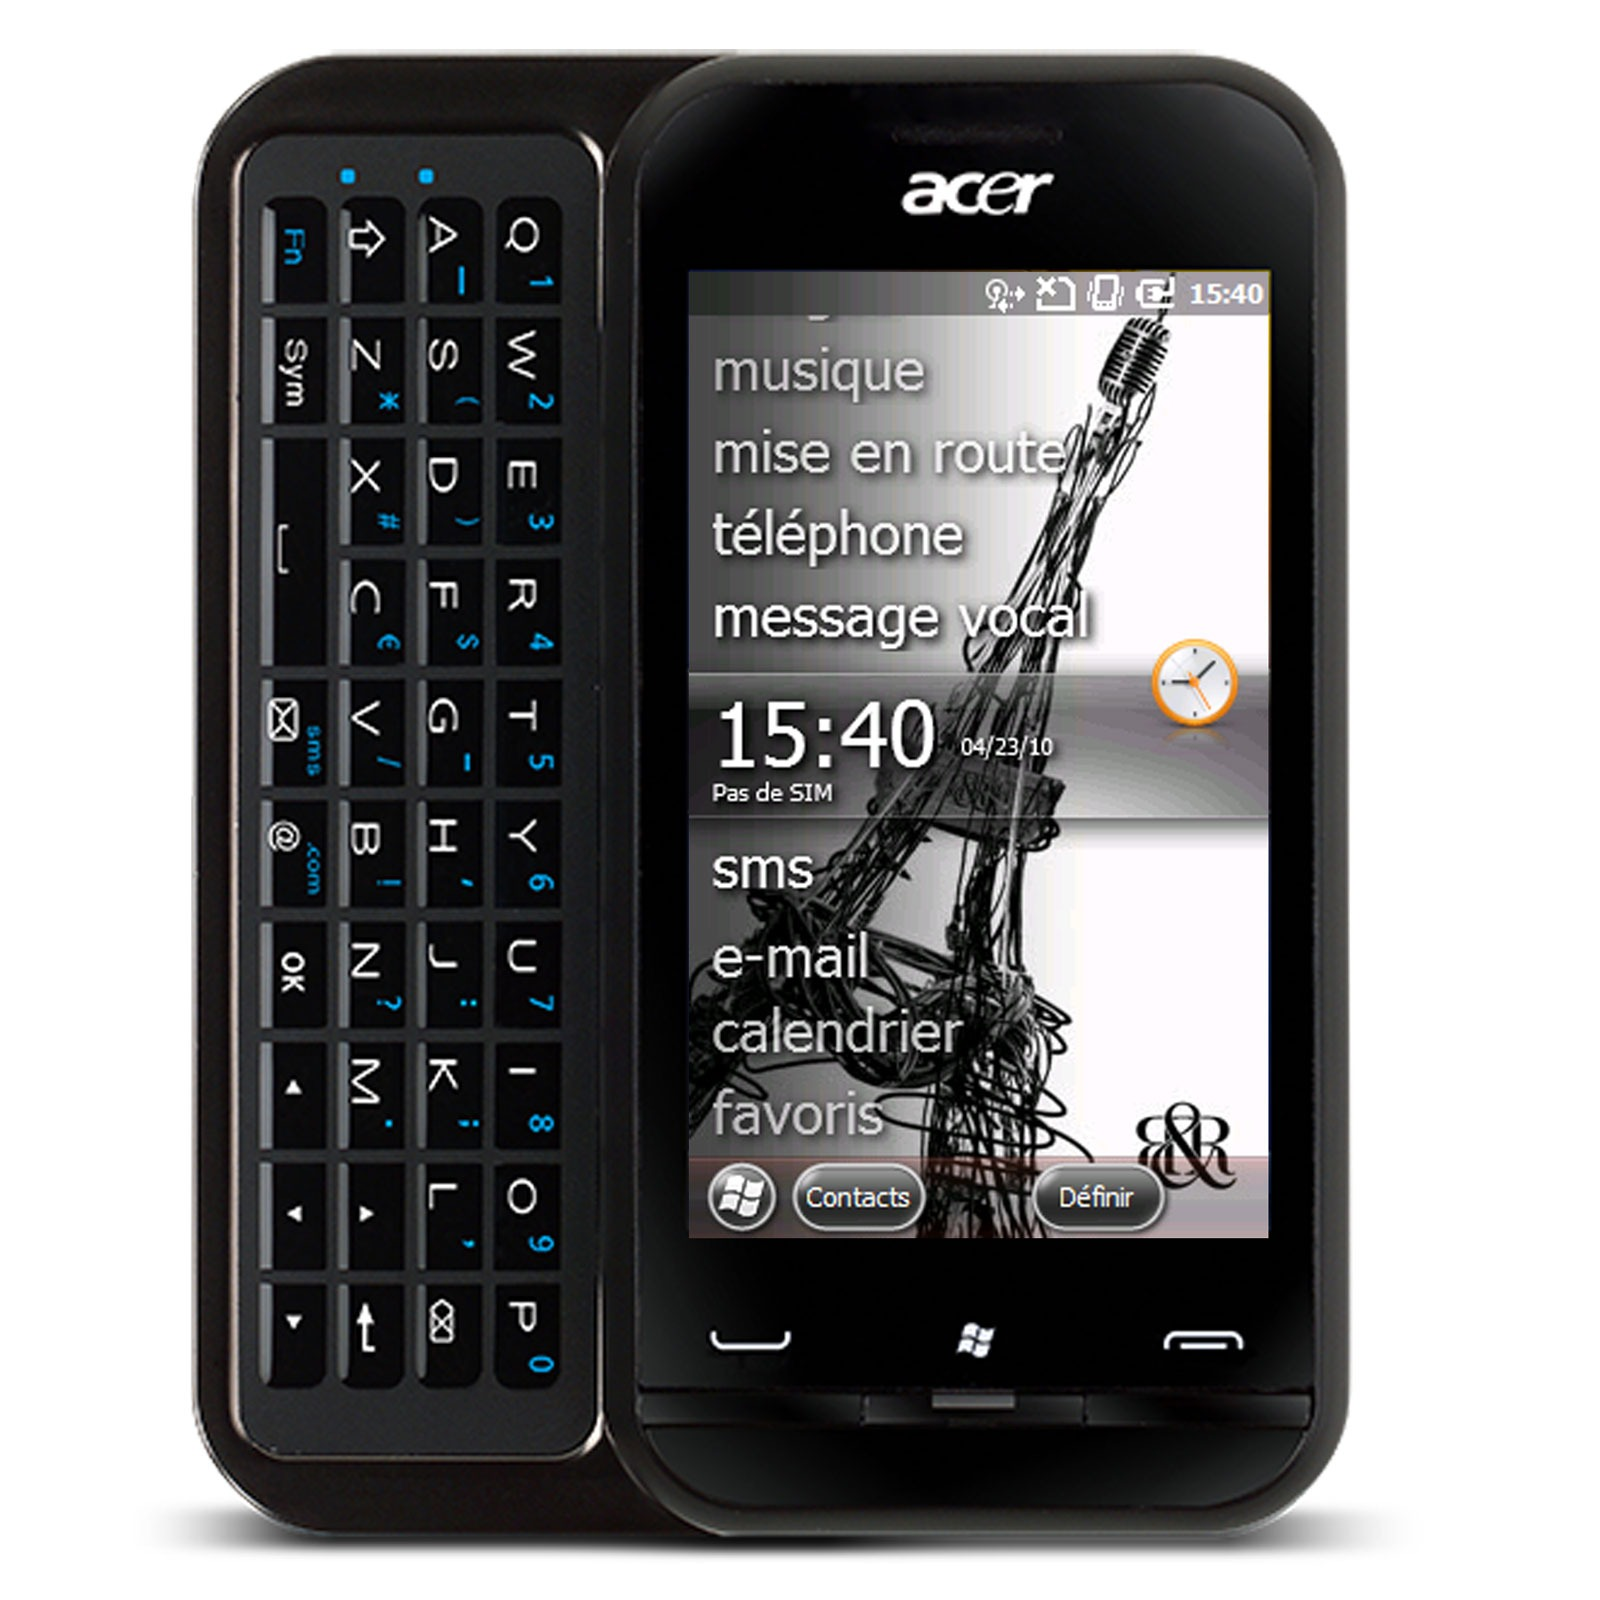 acer newtouch p300 noir p300 black achat vente mobile smartphone sur. Black Bedroom Furniture Sets. Home Design Ideas